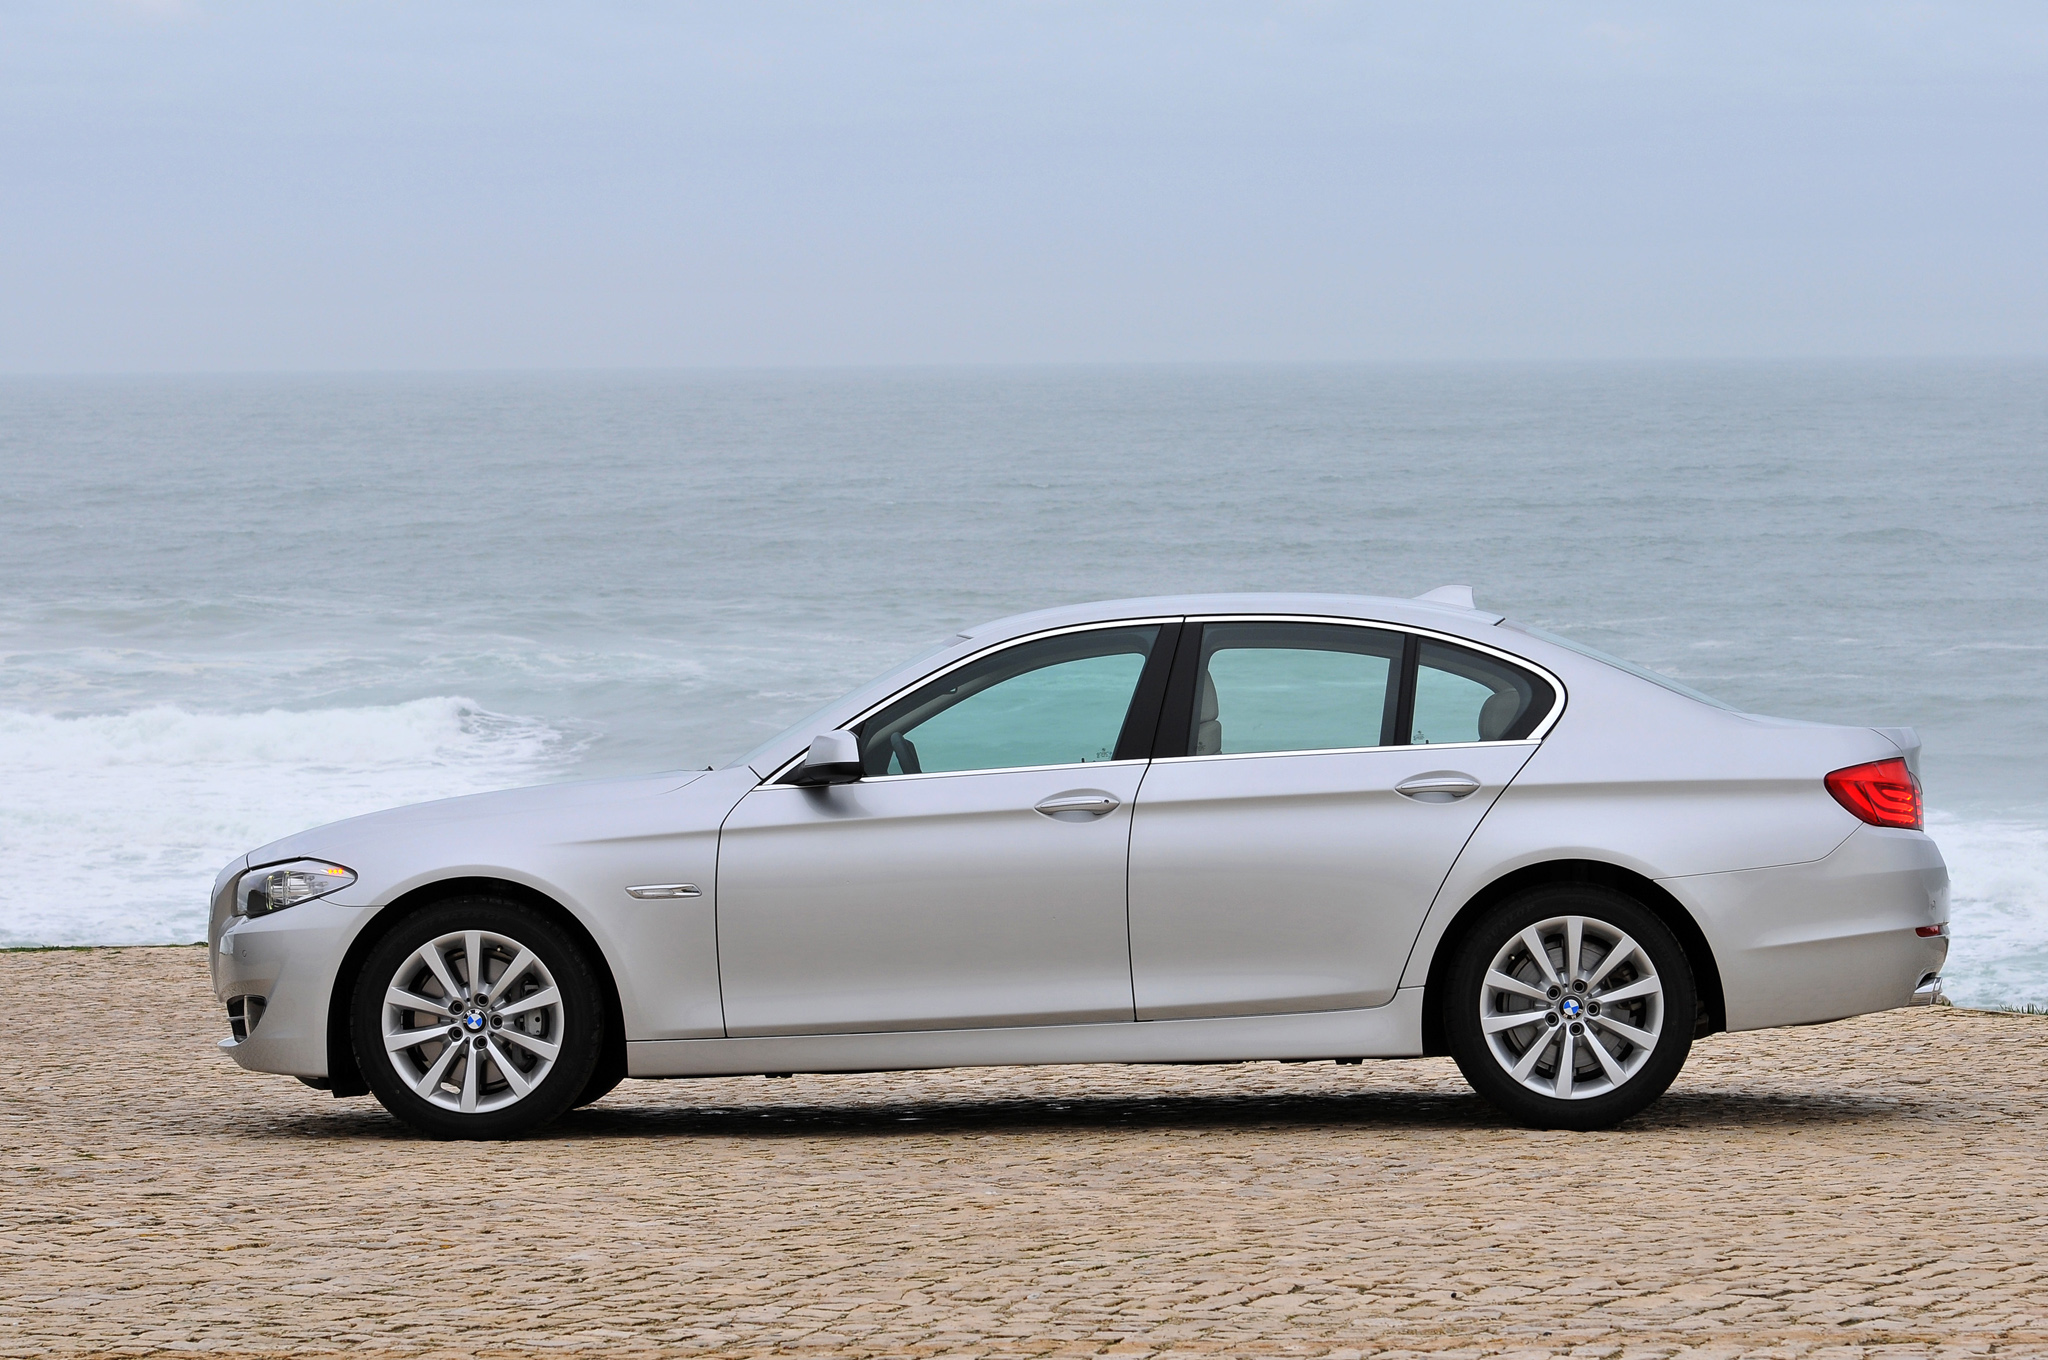 BMW 5 series 528i 2013 photo - 3